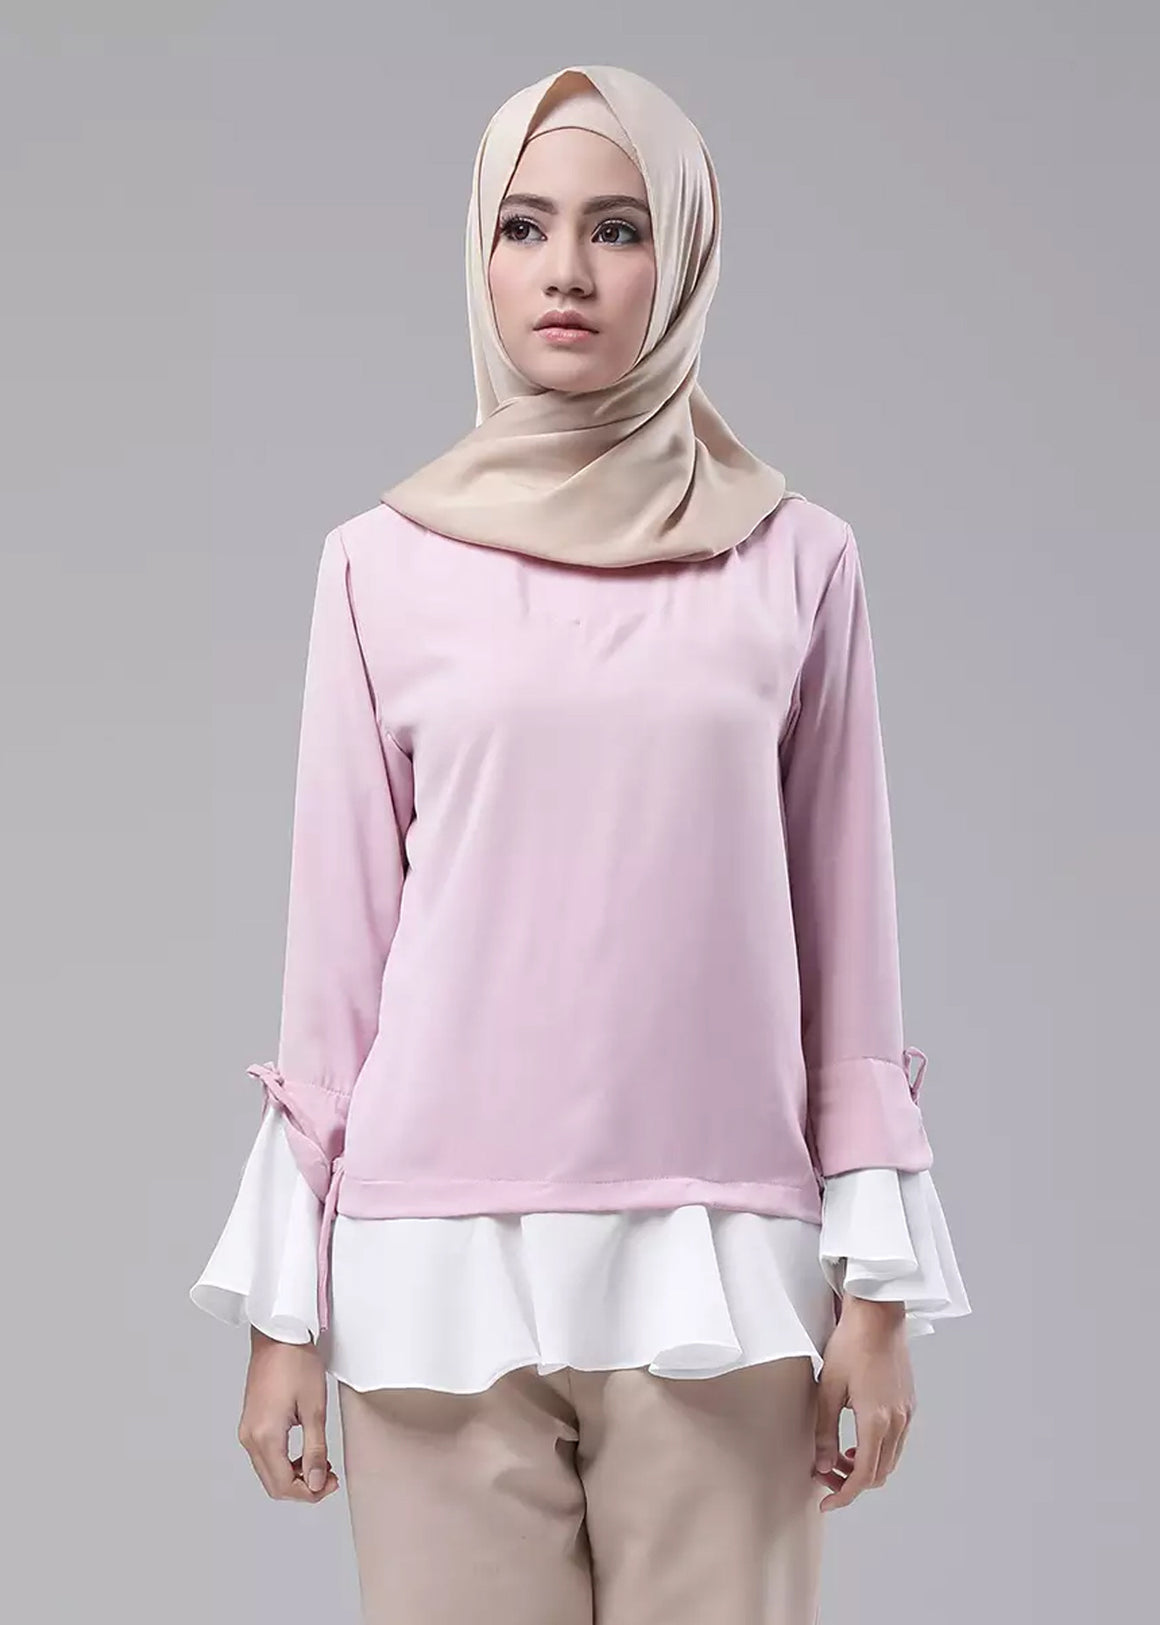 Cin Top Pink - eclemix